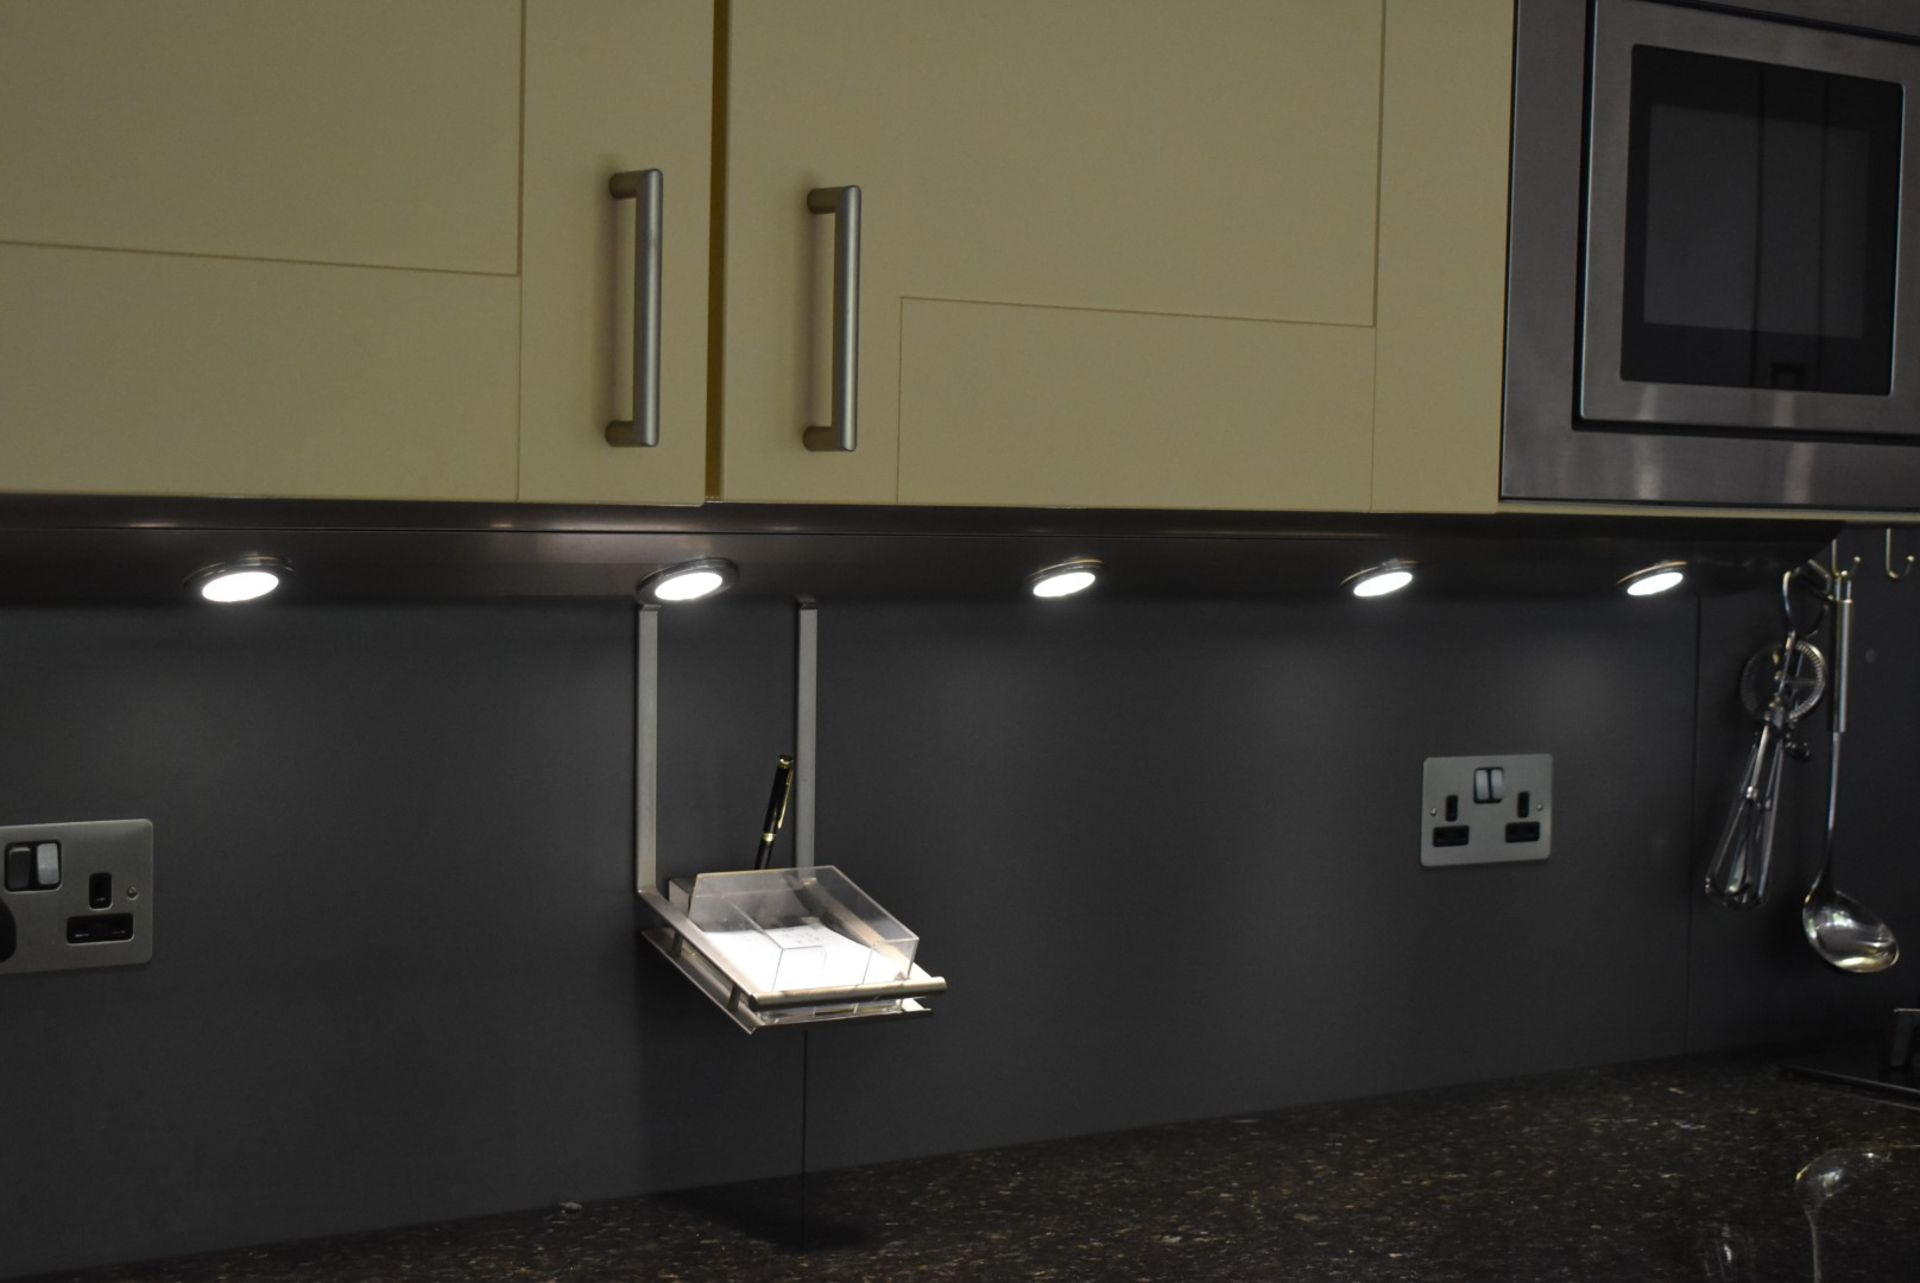 1 x SieMatic Contemporary Fitted Kitchen With Appliances - Features Shaker Style Doors, Central - Image 29 of 96